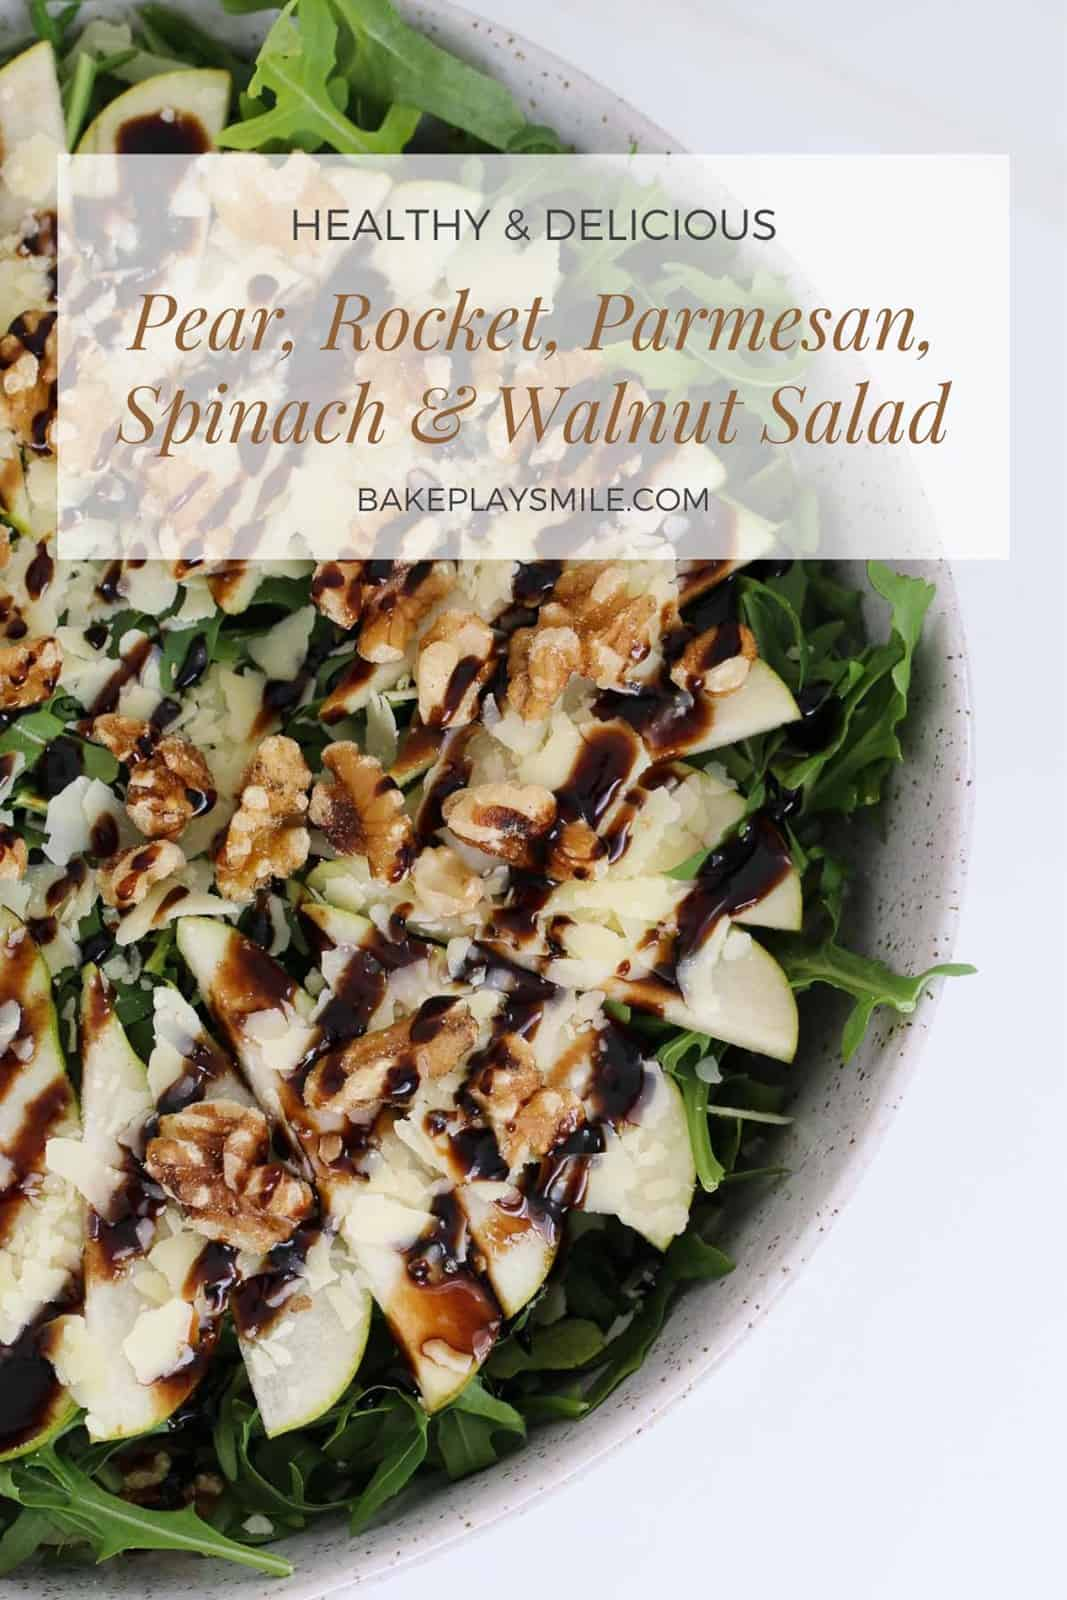 An overhead shot of a salad made with pear, rocket, walnuts and parmesan.